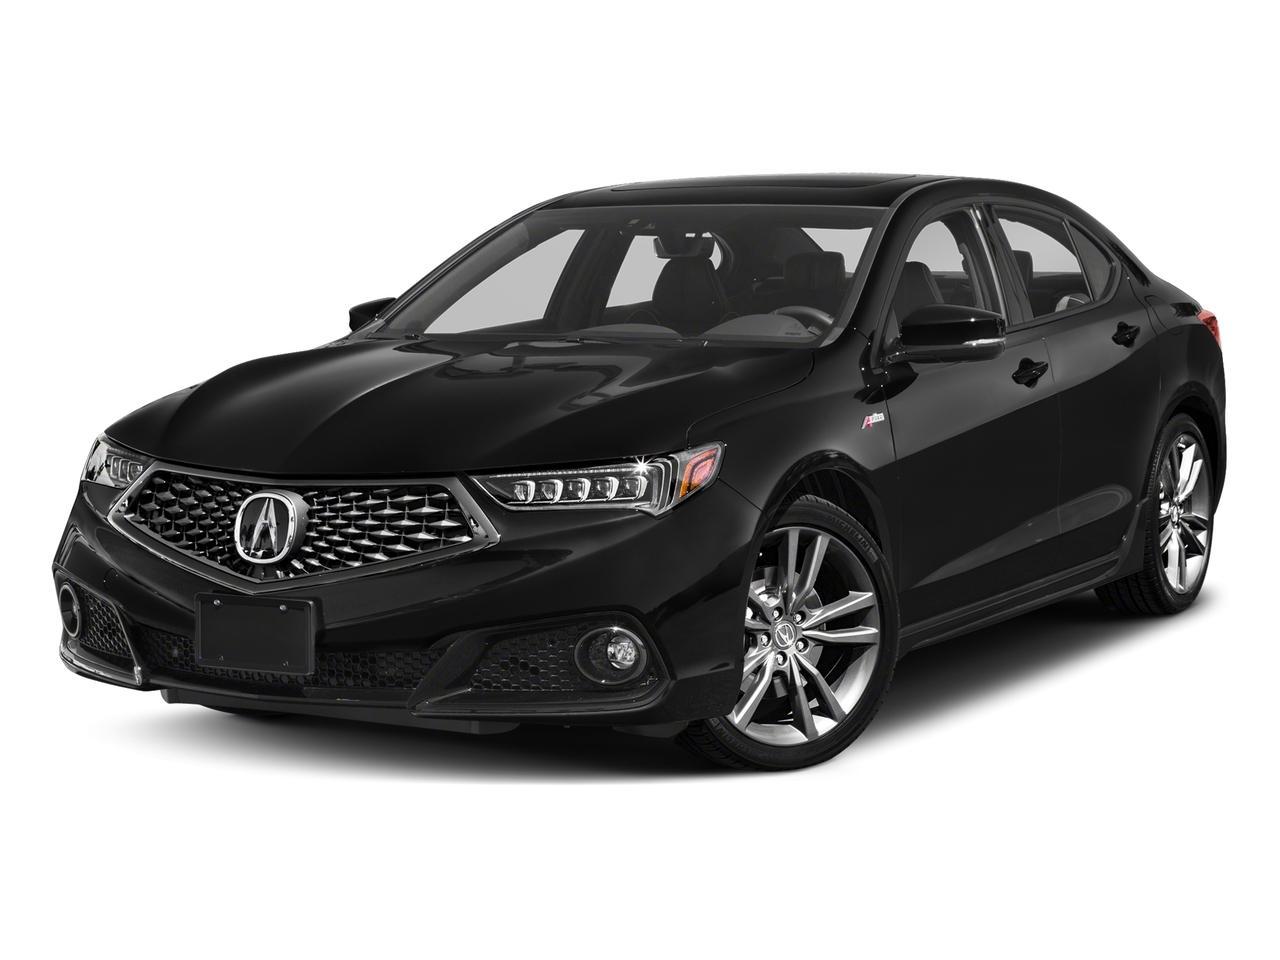 2018 Acura TLX Vehicle Photo in Grapevine, TX 76051